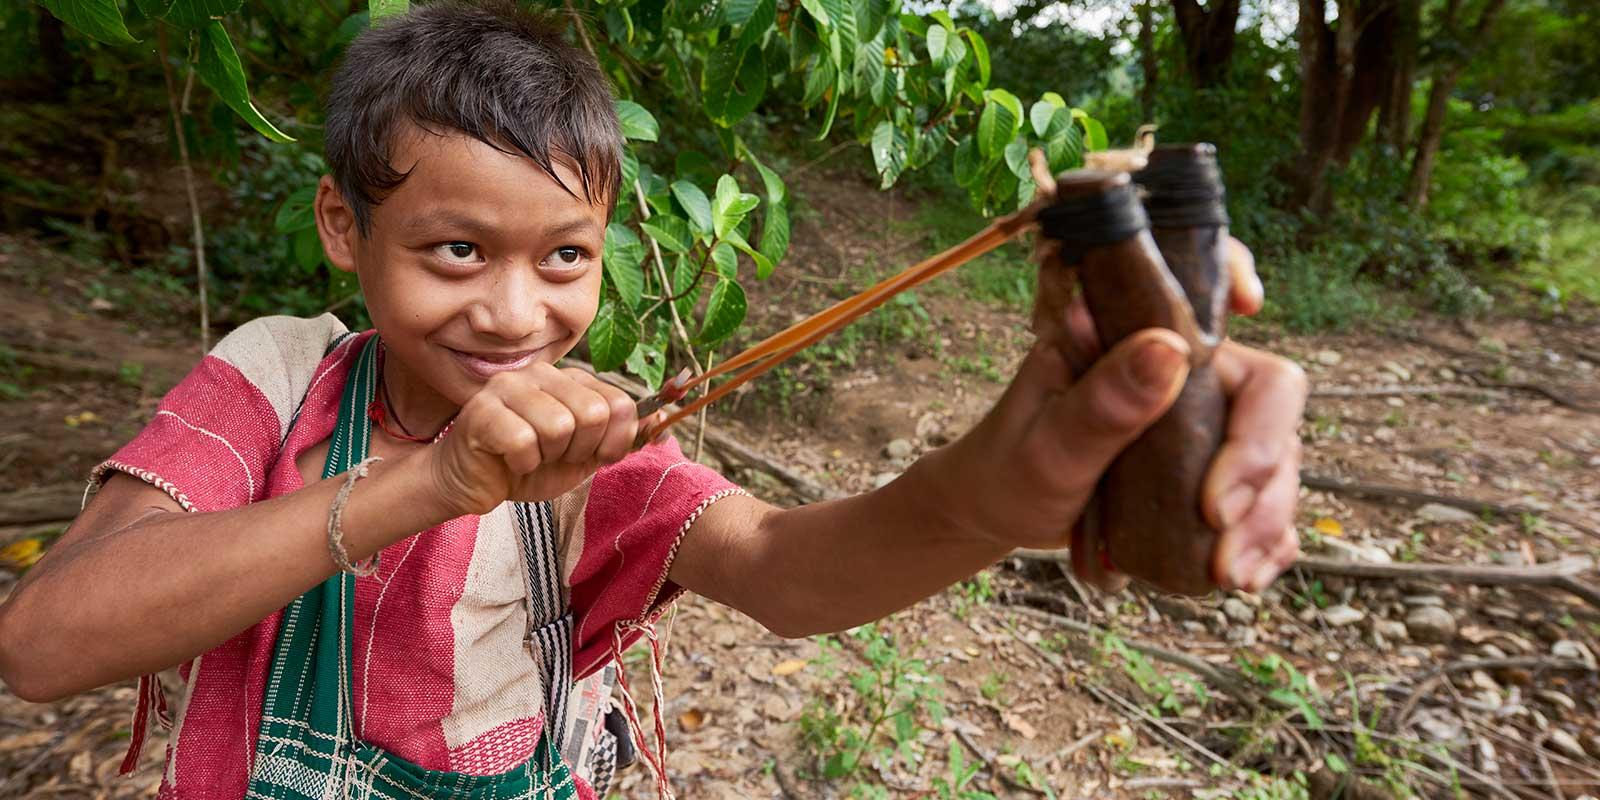 Boy with slingshot in rain forest